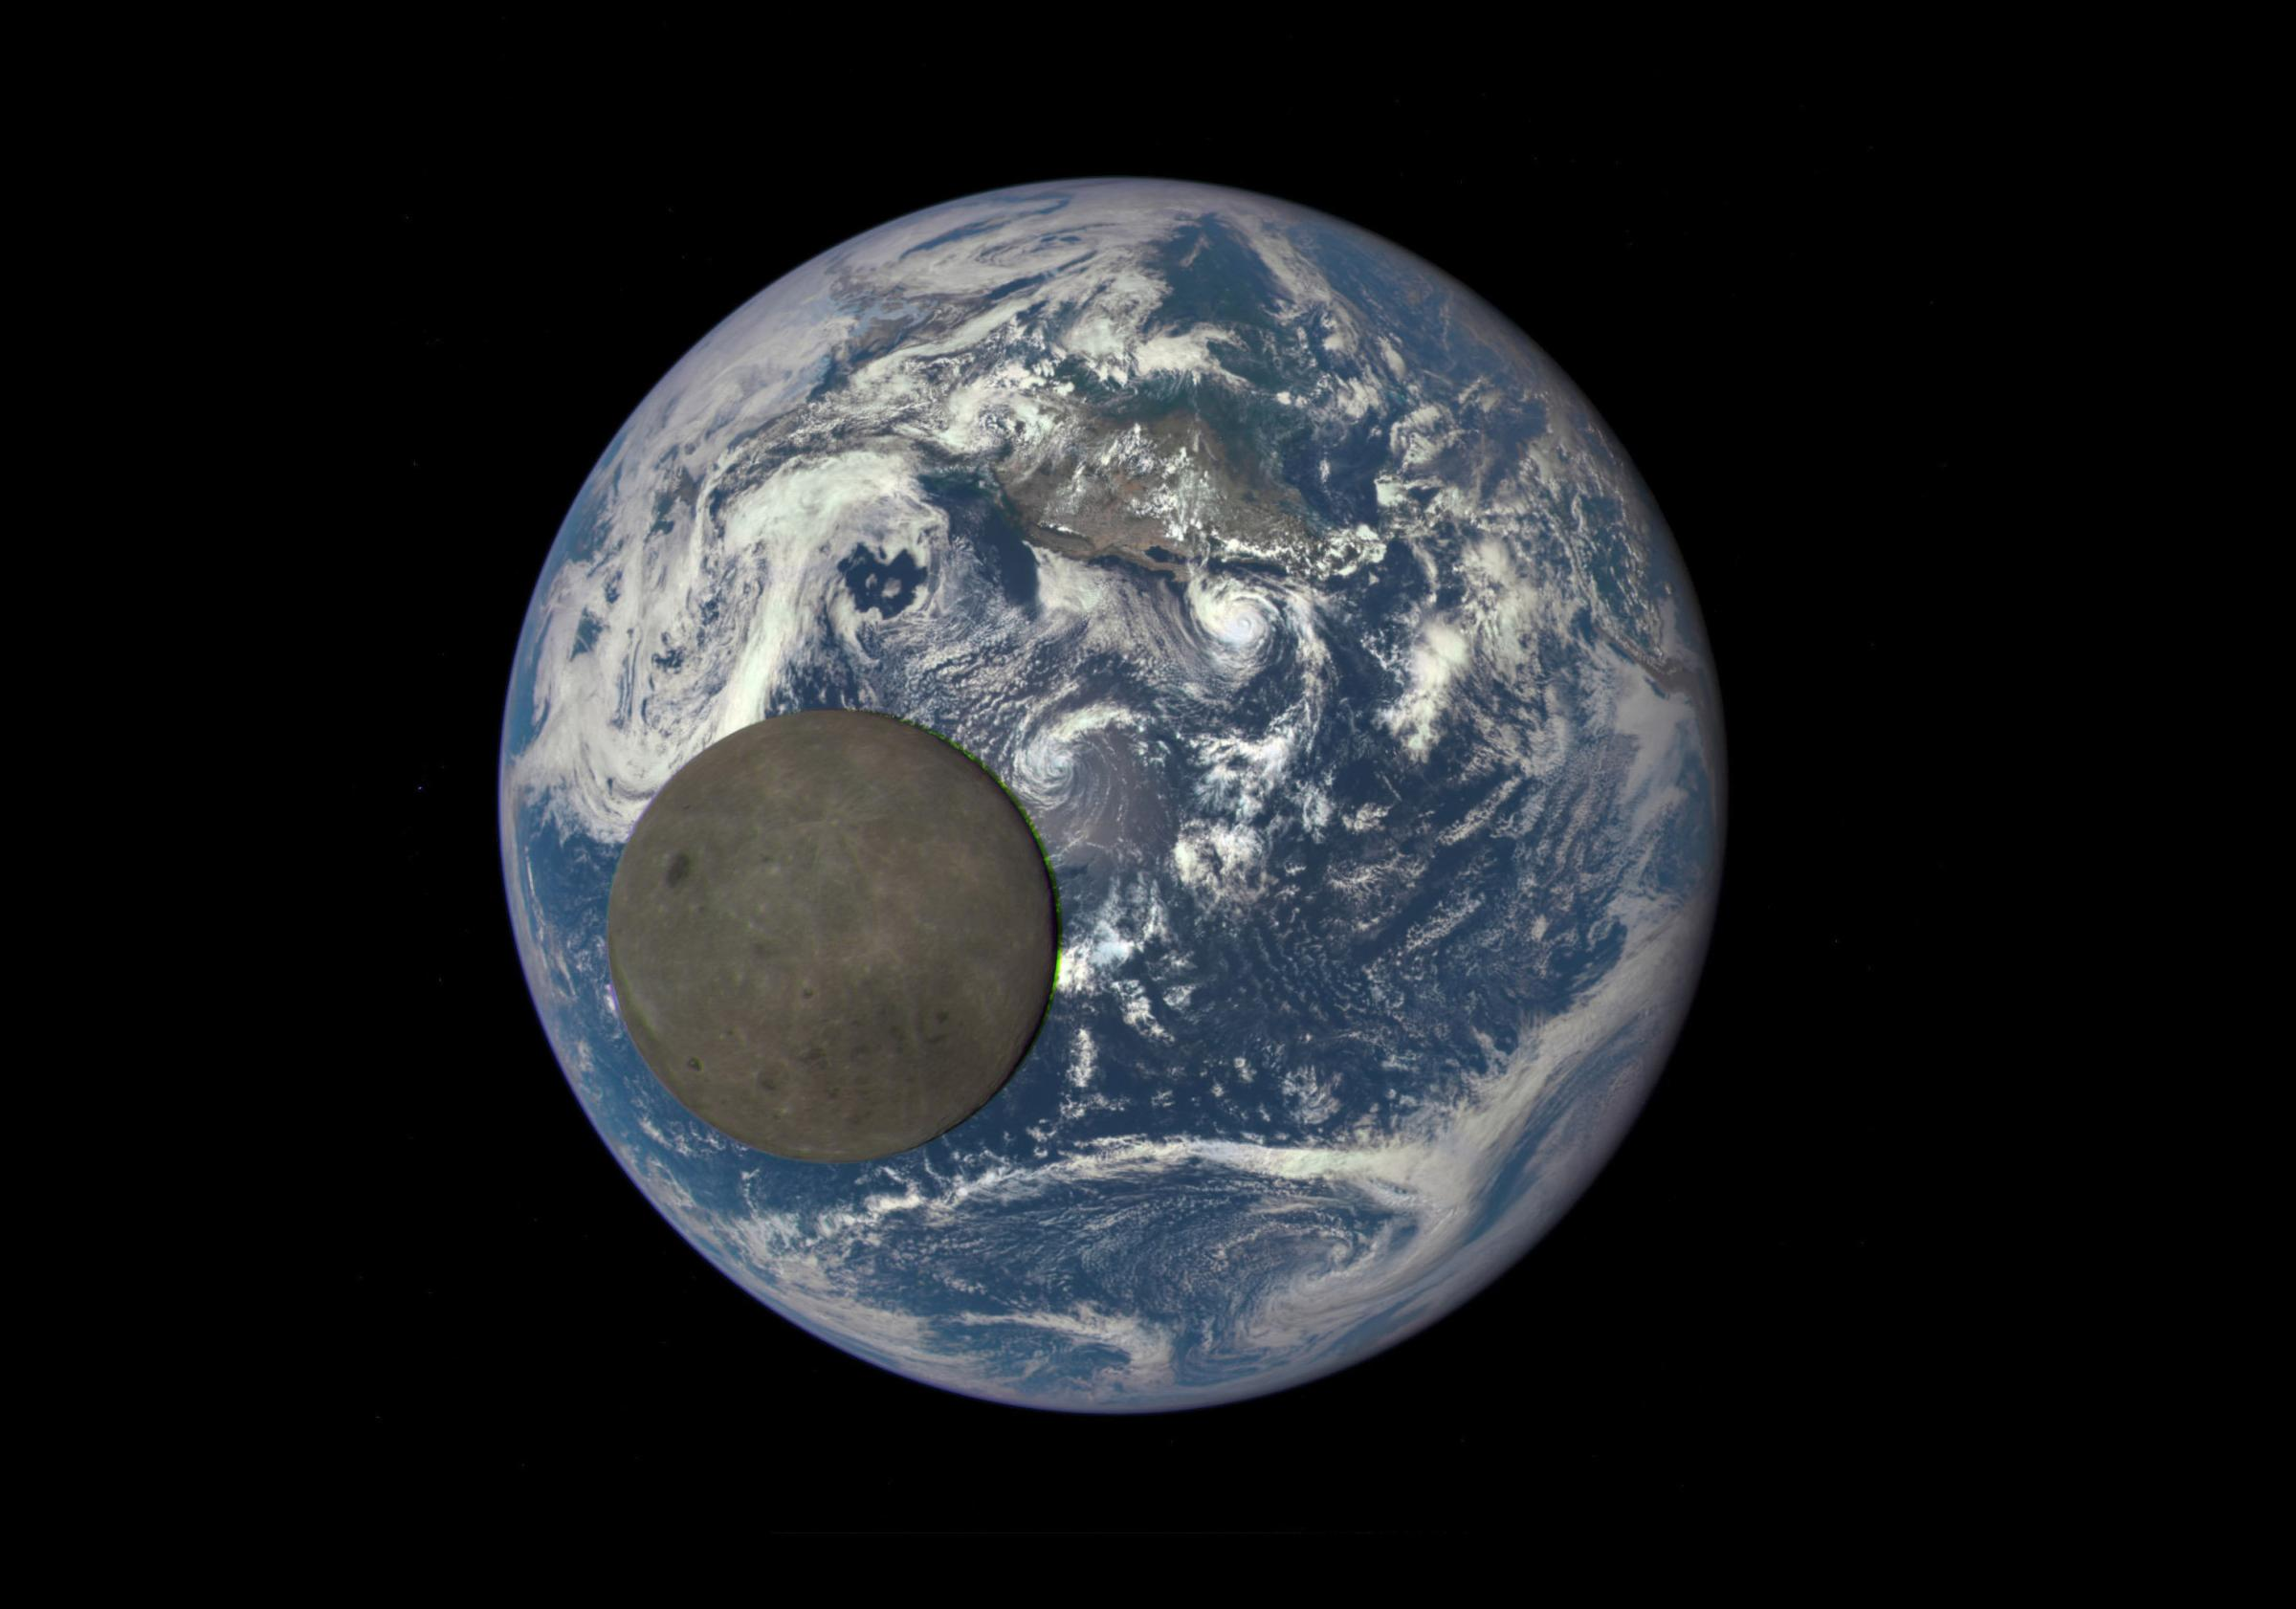 Satellite image shows the far side of the moon crossing between a spacecraft and the Earth